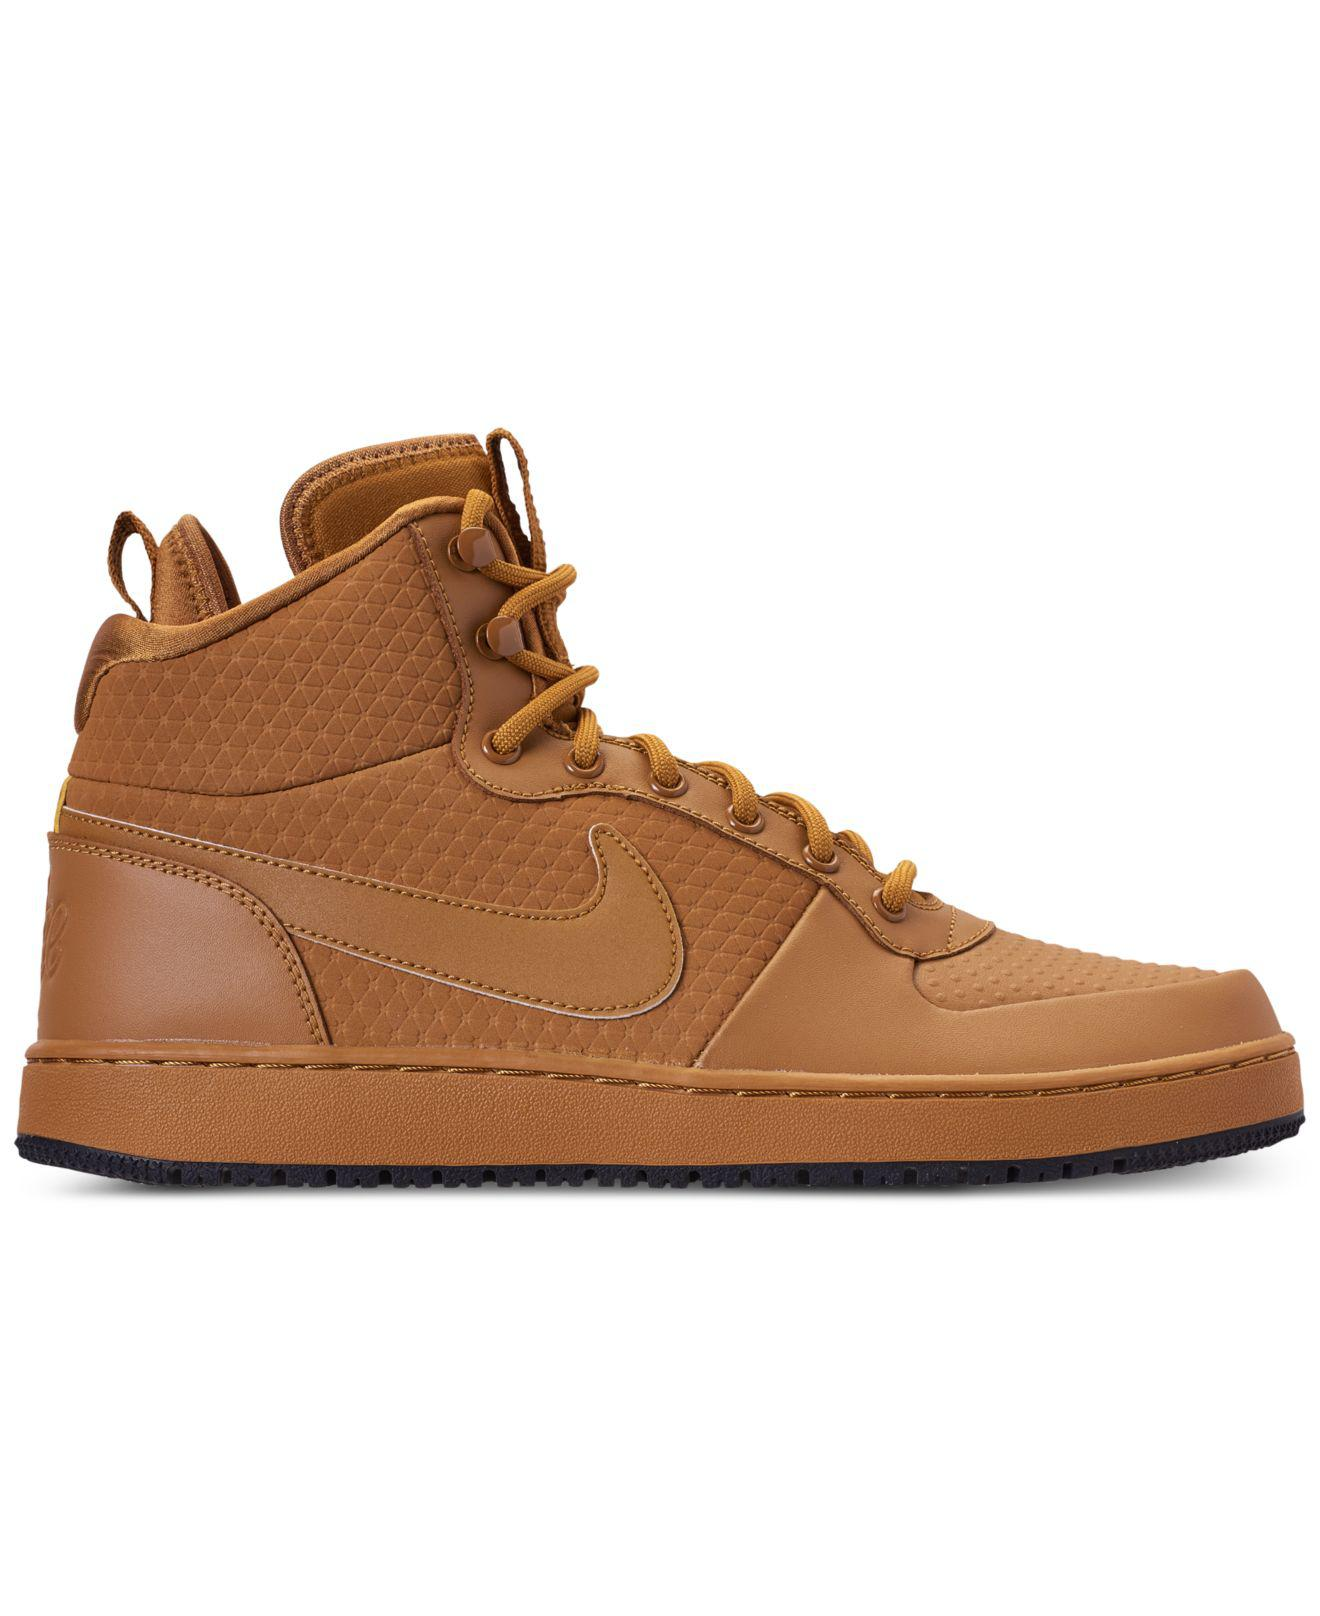 Lyst - Nike Ebernon Mid Winter Casual Sneakers From Finish Line in Brown  for Men - Save 16% 327158f08